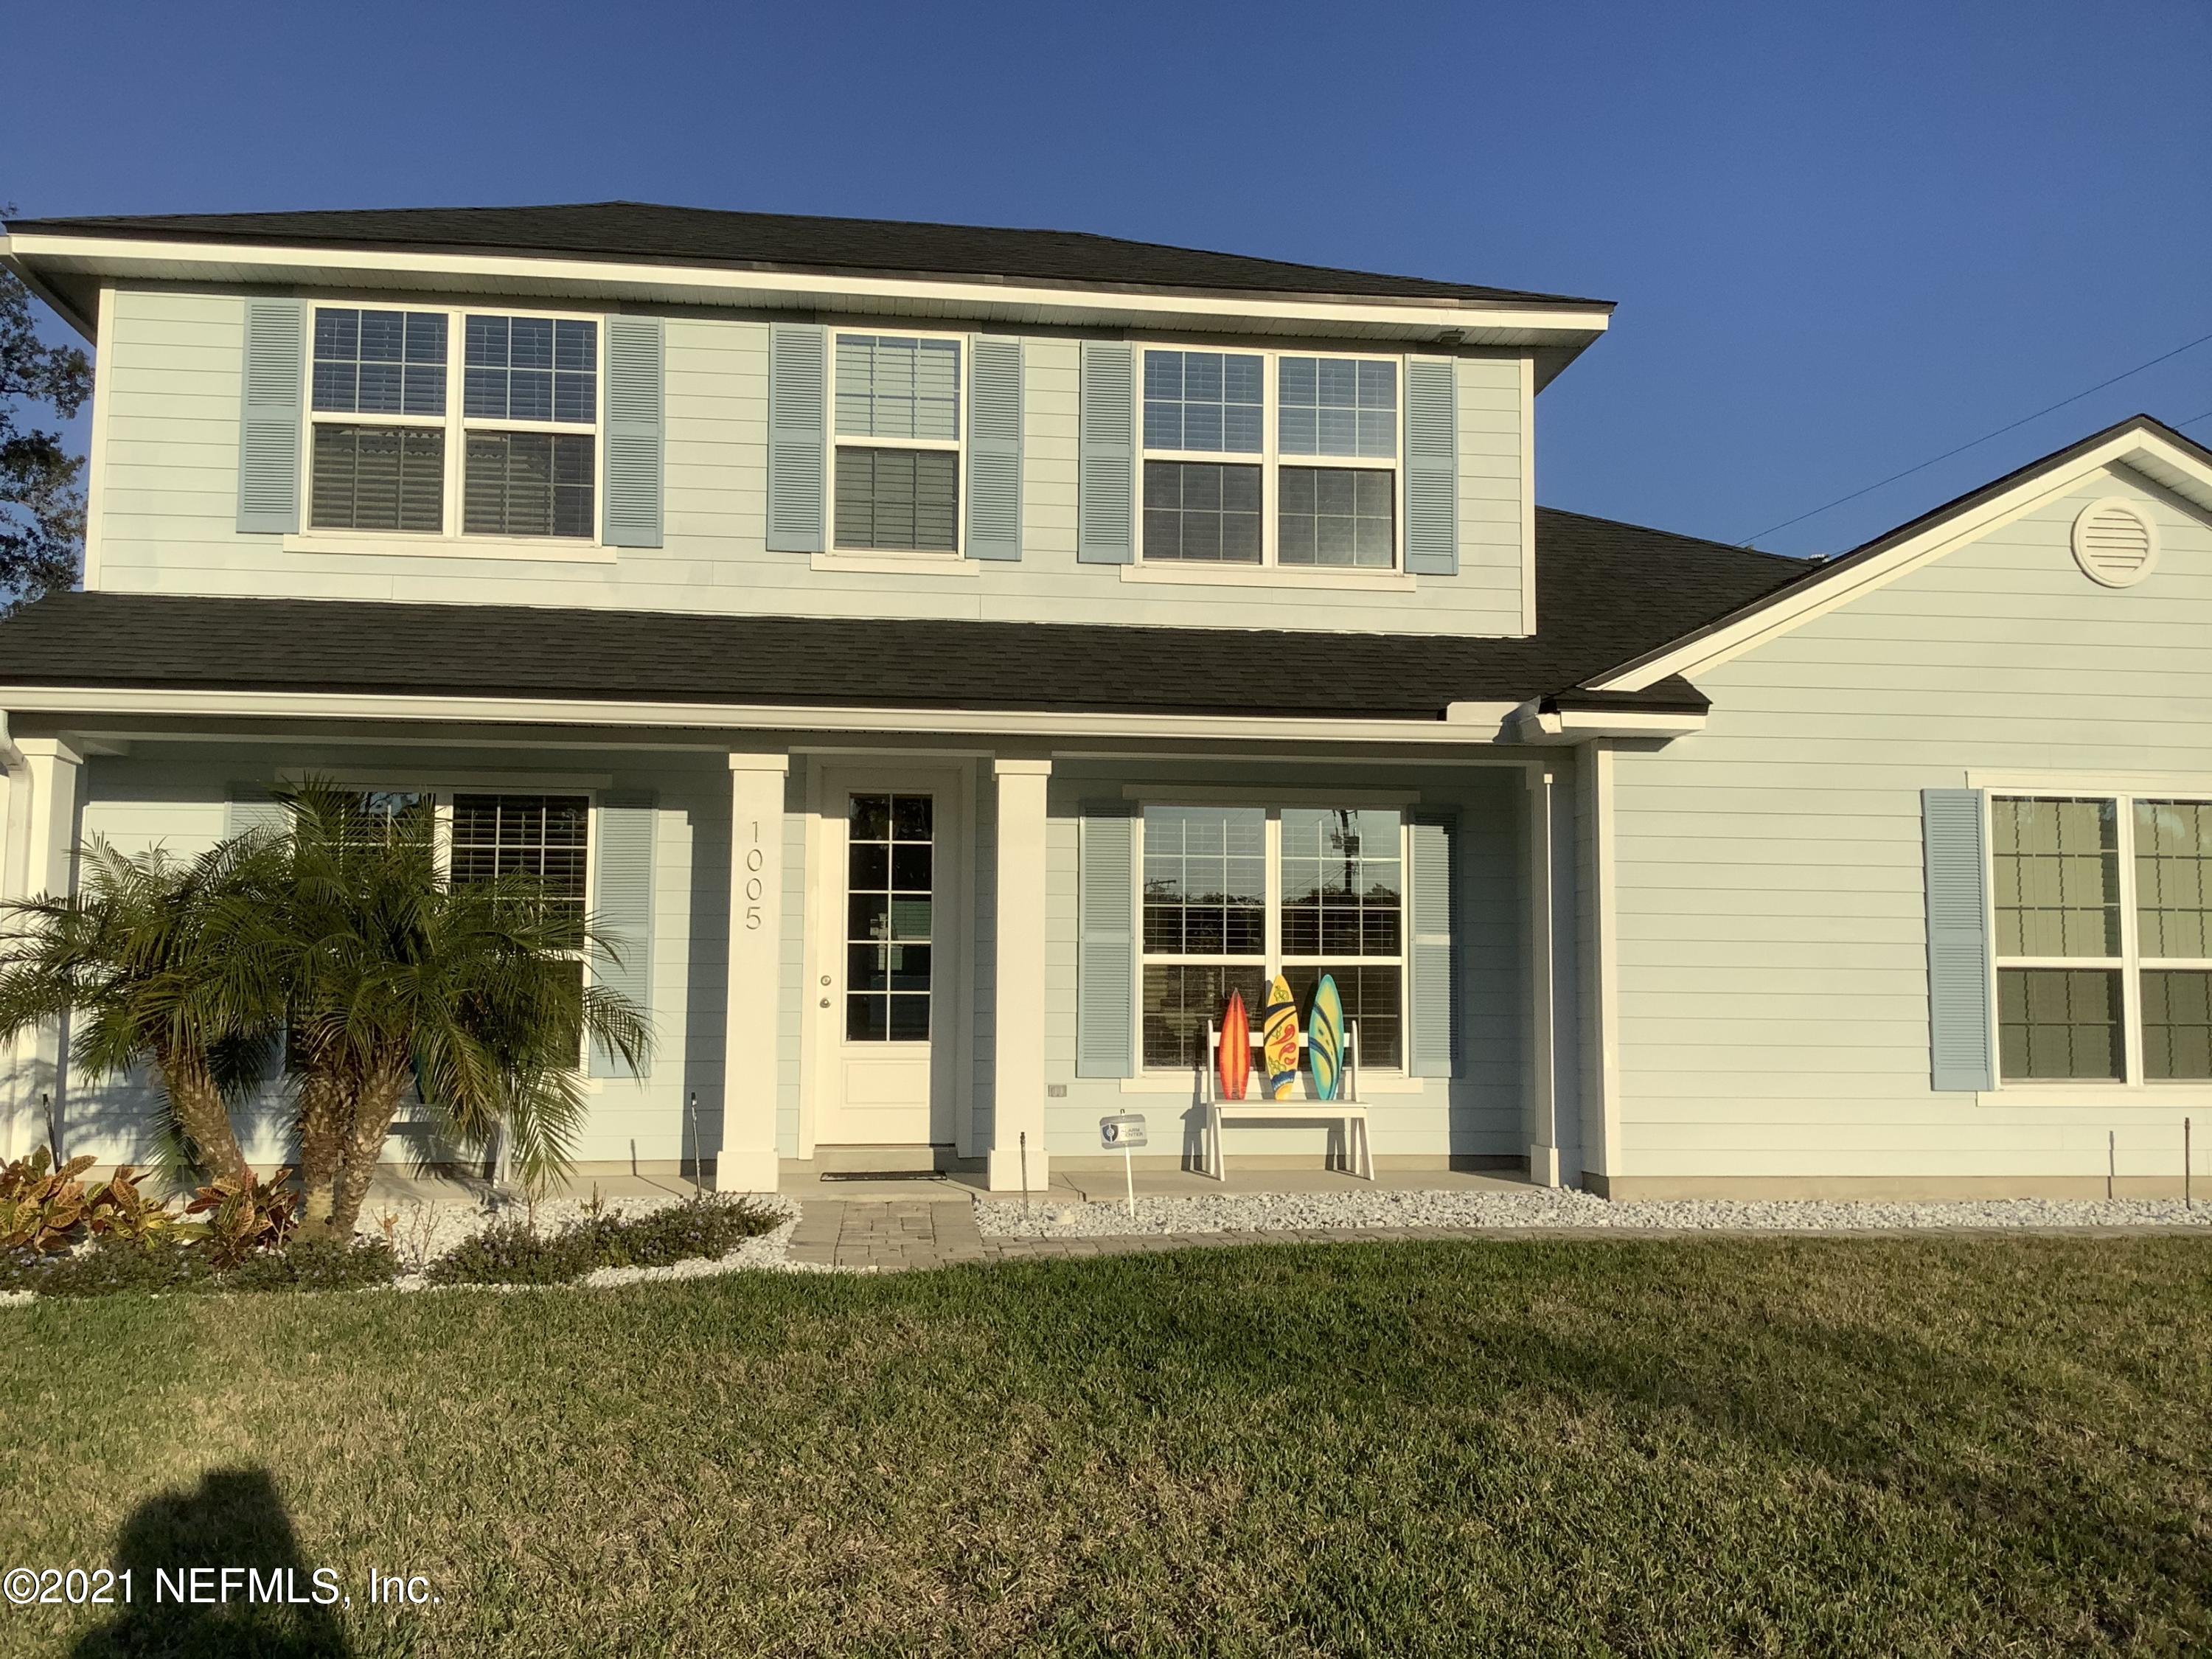 1005 16TH ST N, JACKSONVILLE BEACH, Florida 32250, 4 Bedrooms Bedrooms, ,4 BathroomsBathrooms,Single Family,For Sale,1005 16TH ST N,1097004